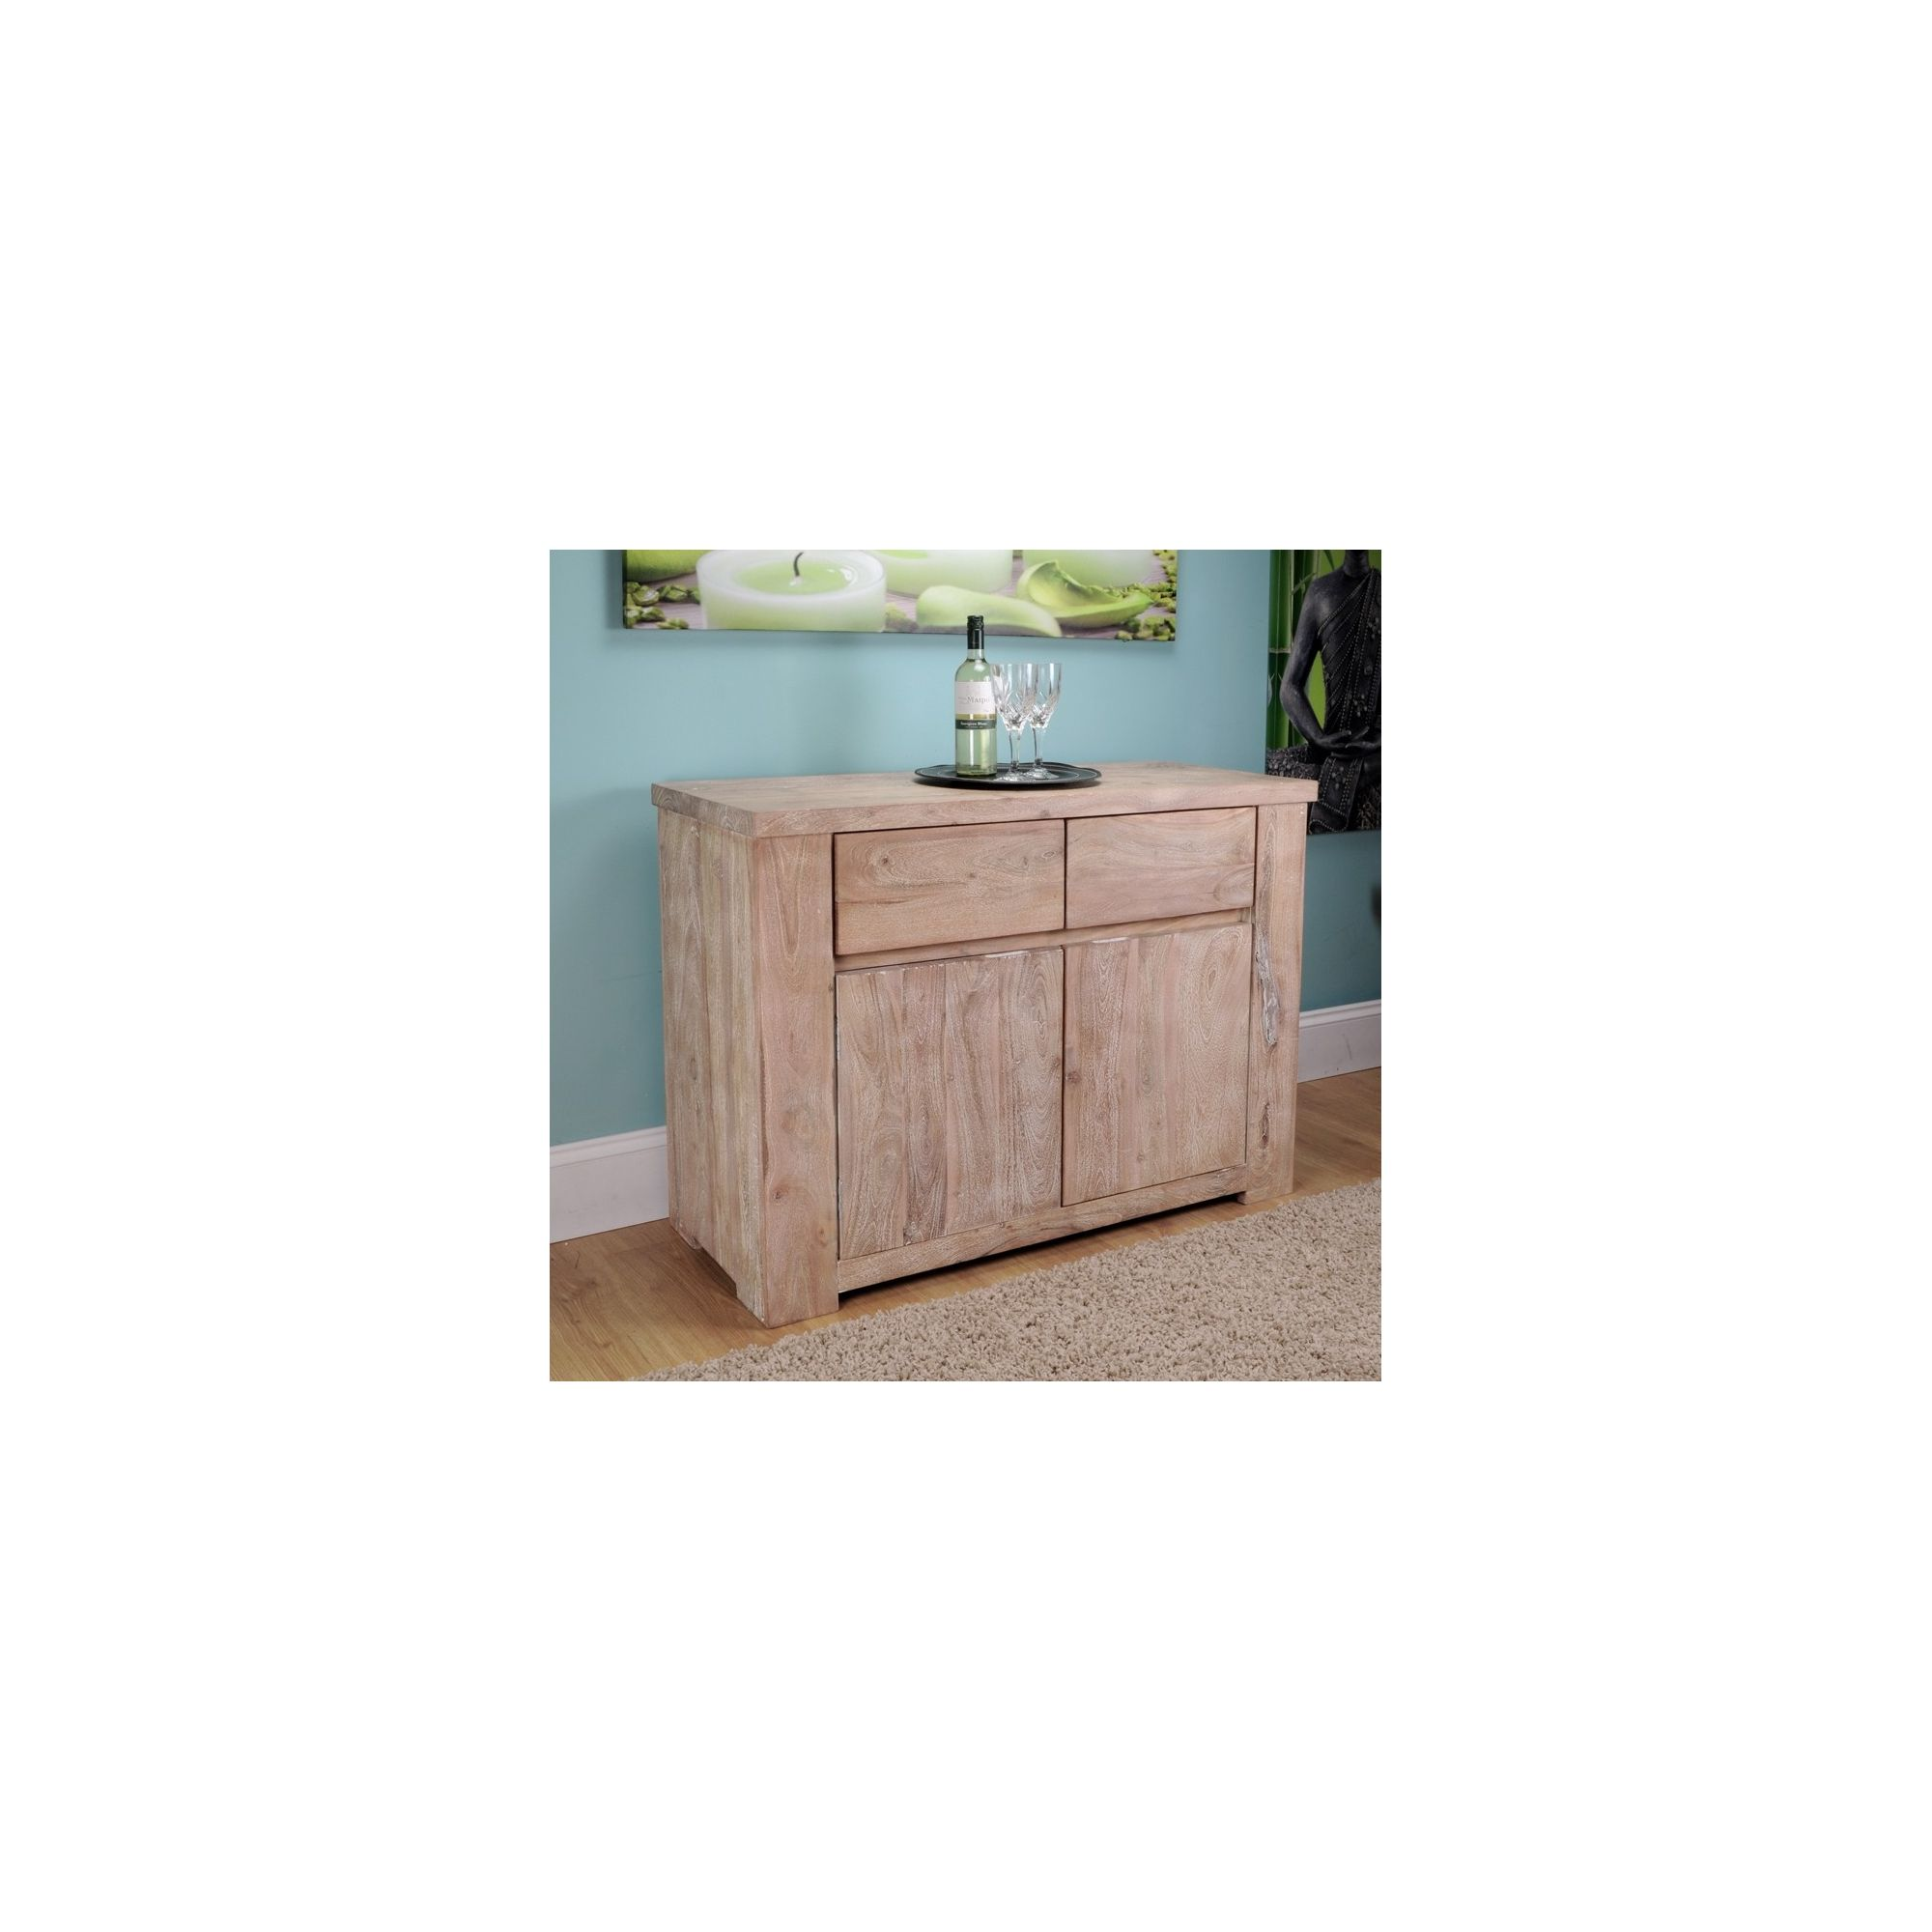 Shankar Enterprises Storm Sideboard - Medium at Tesco Direct